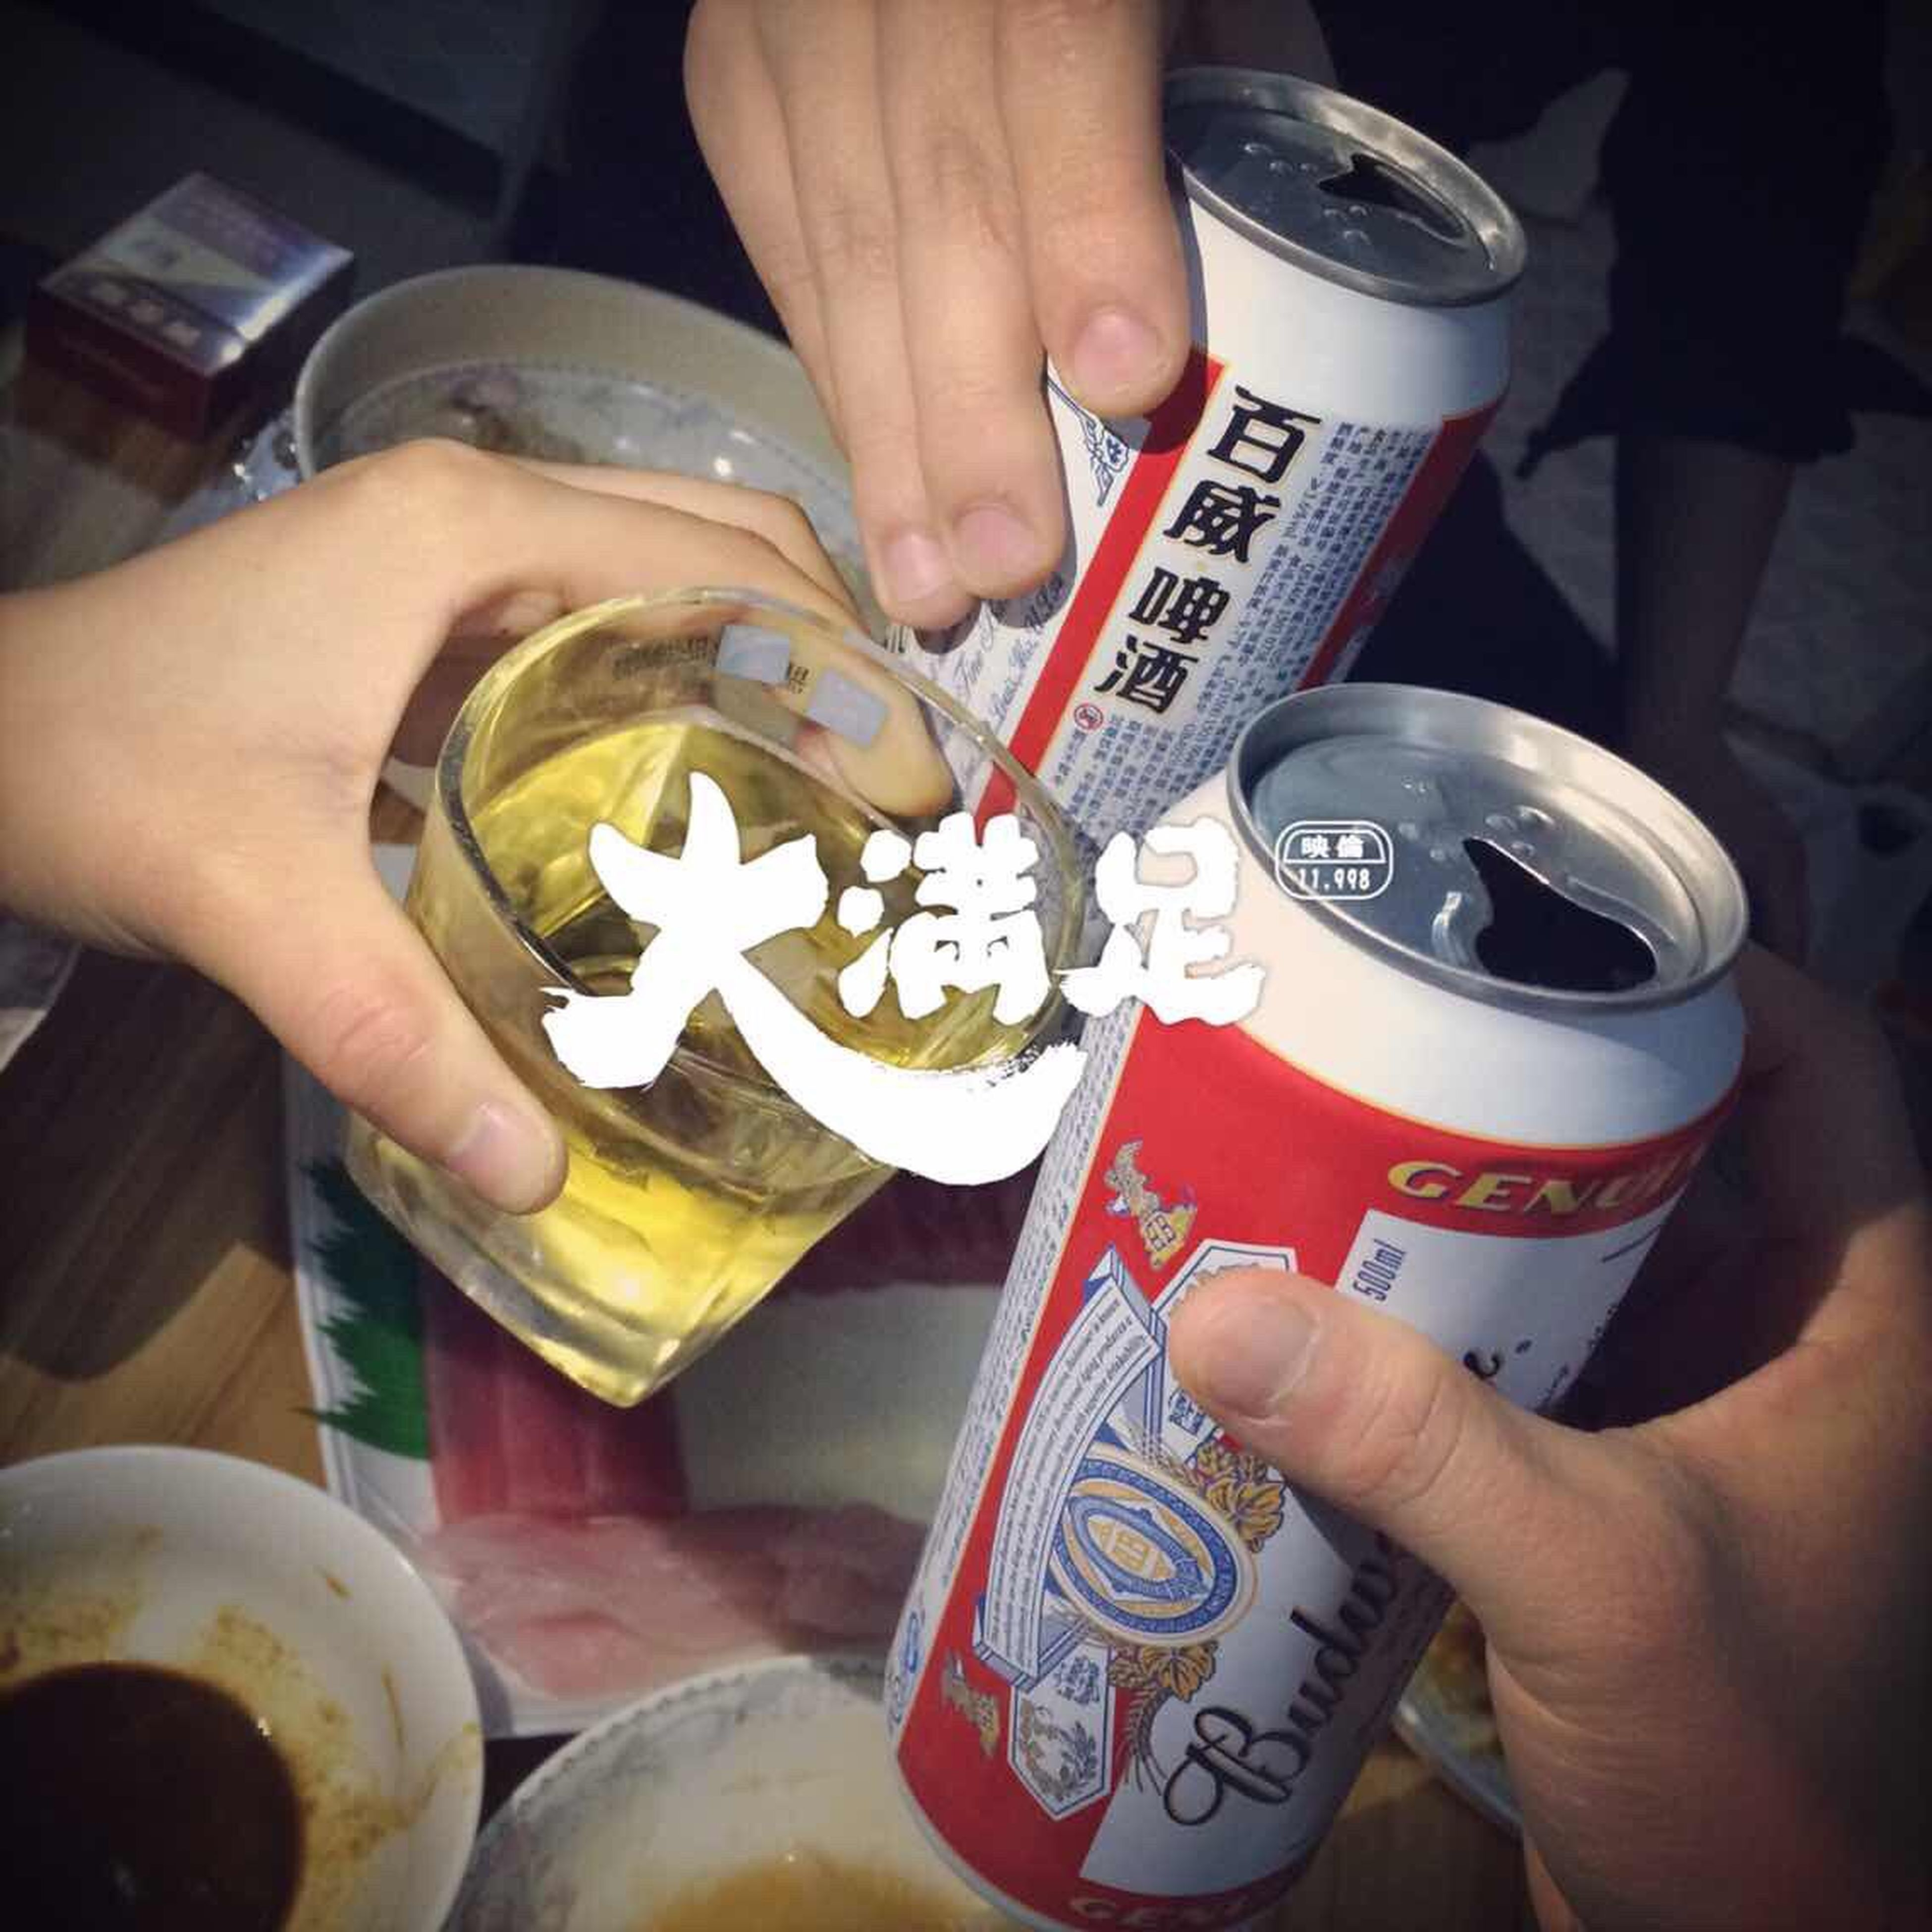 person, food and drink, holding, freshness, part of, cropped, food, indoors, drink, lifestyles, human finger, unrecognizable person, refreshment, men, leisure activity, table